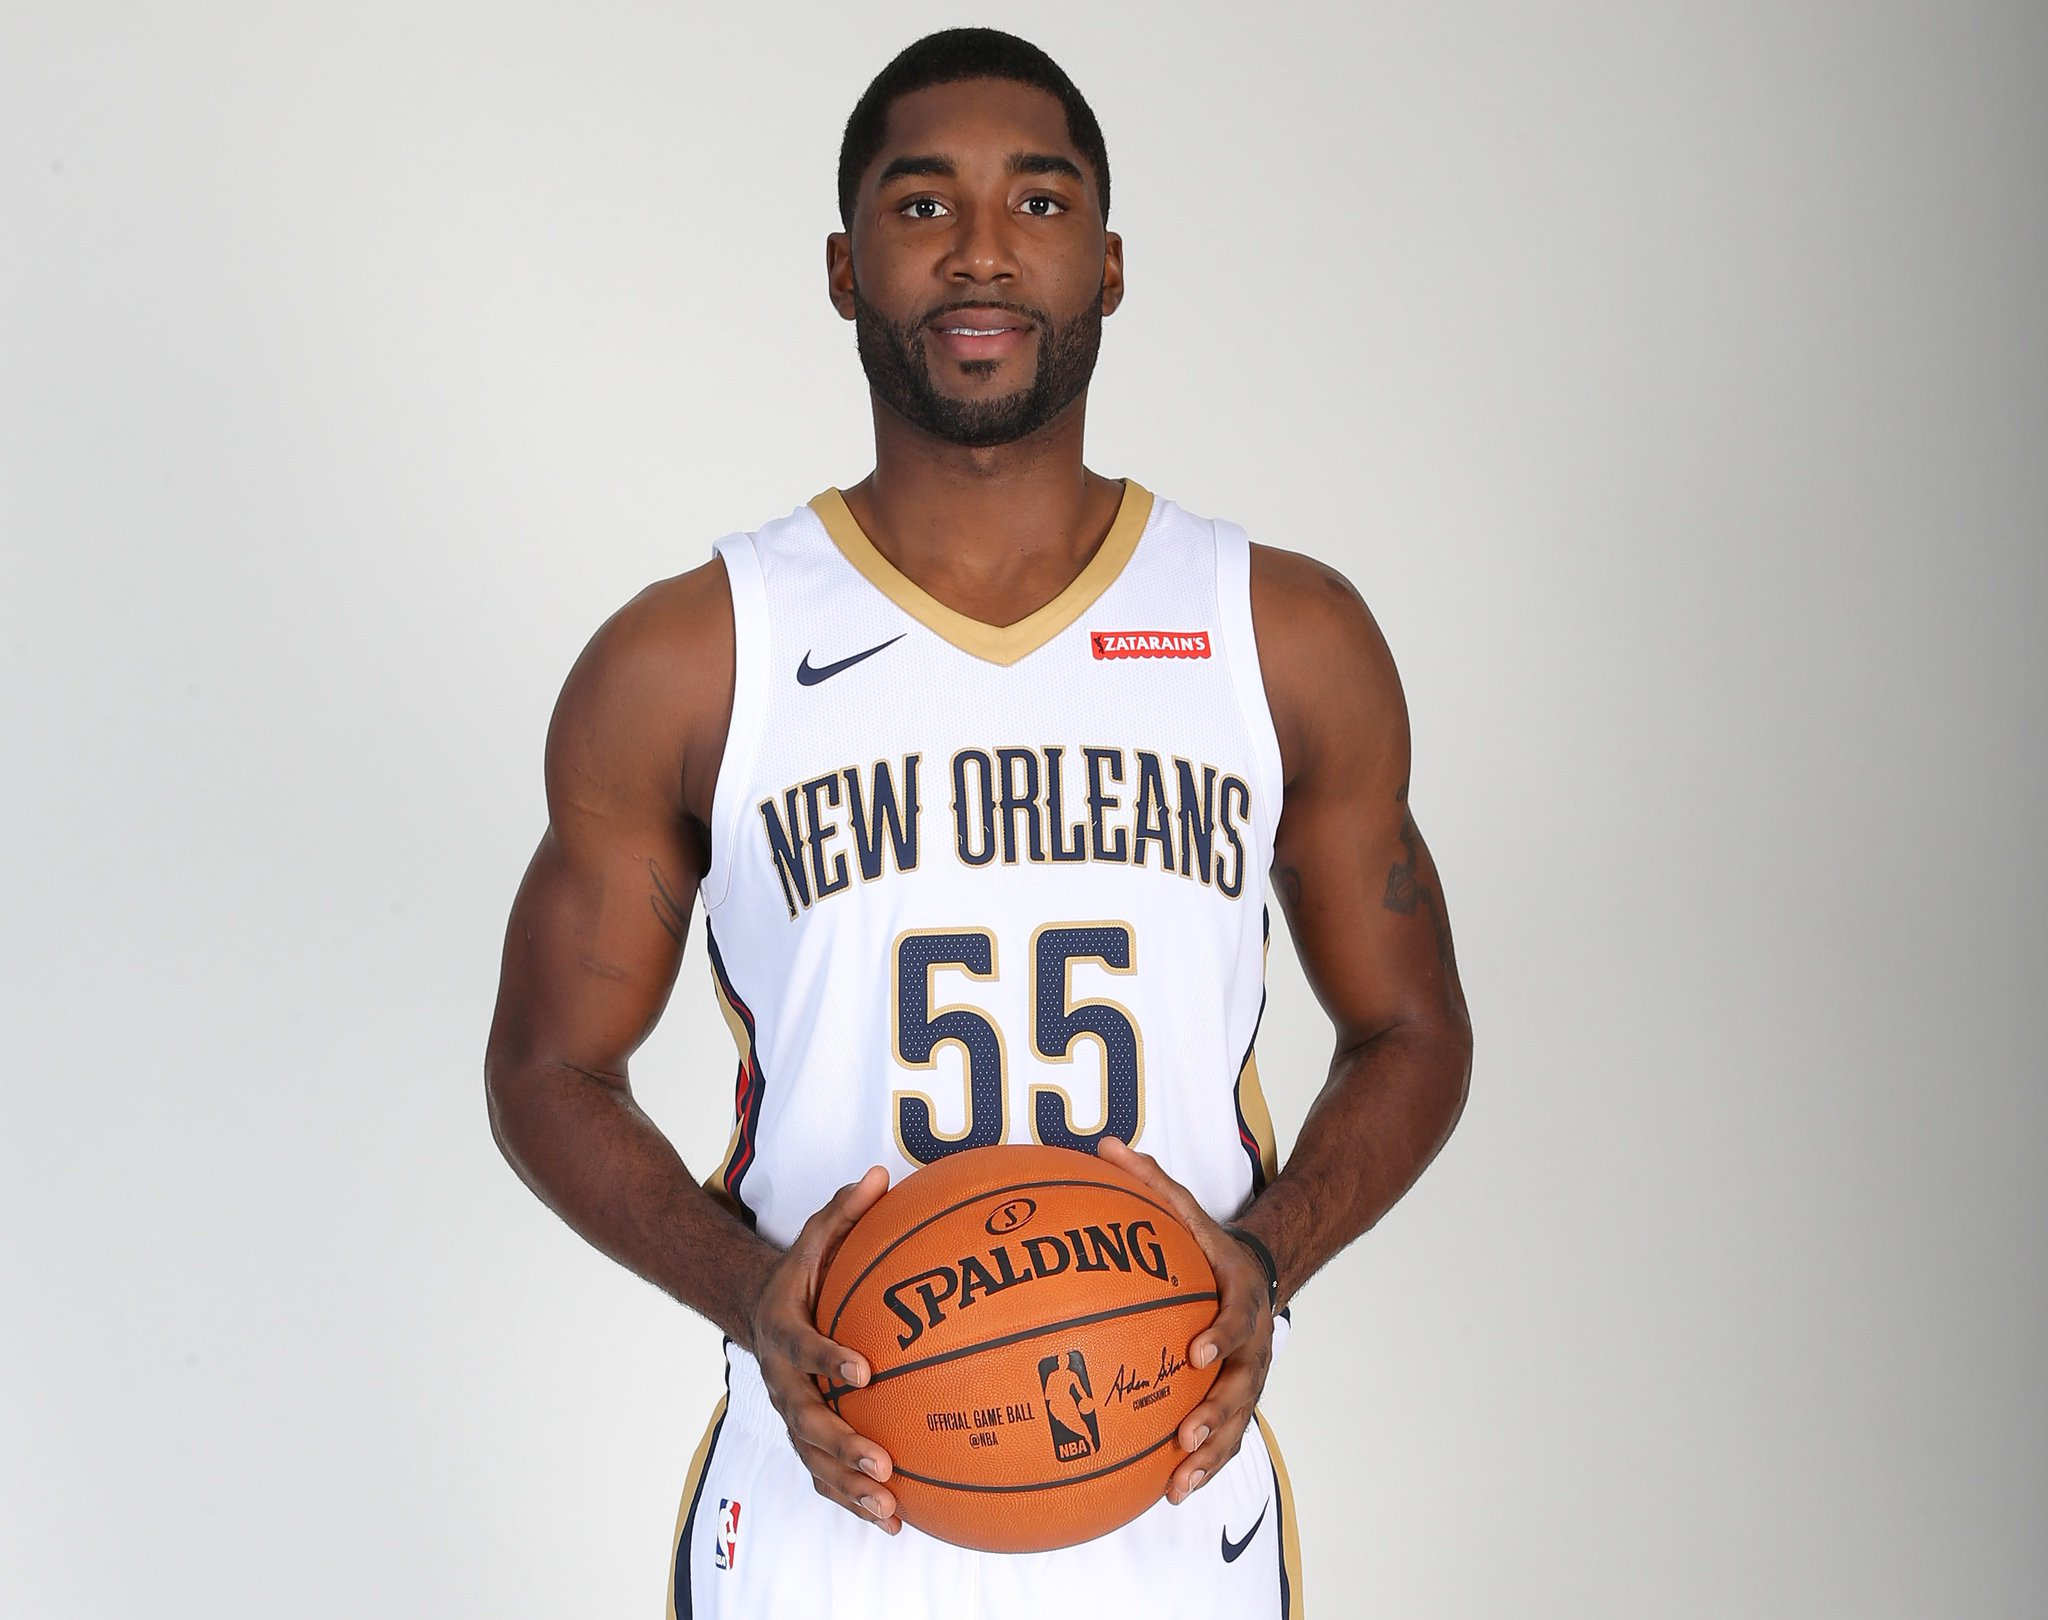 Join us in wishing @ETwaun55 of the @PelicansNBA a HAPPY 29th BIRTHDAY!   #NBABDAY #DoItBig https://t.co/0ams5X8JW8